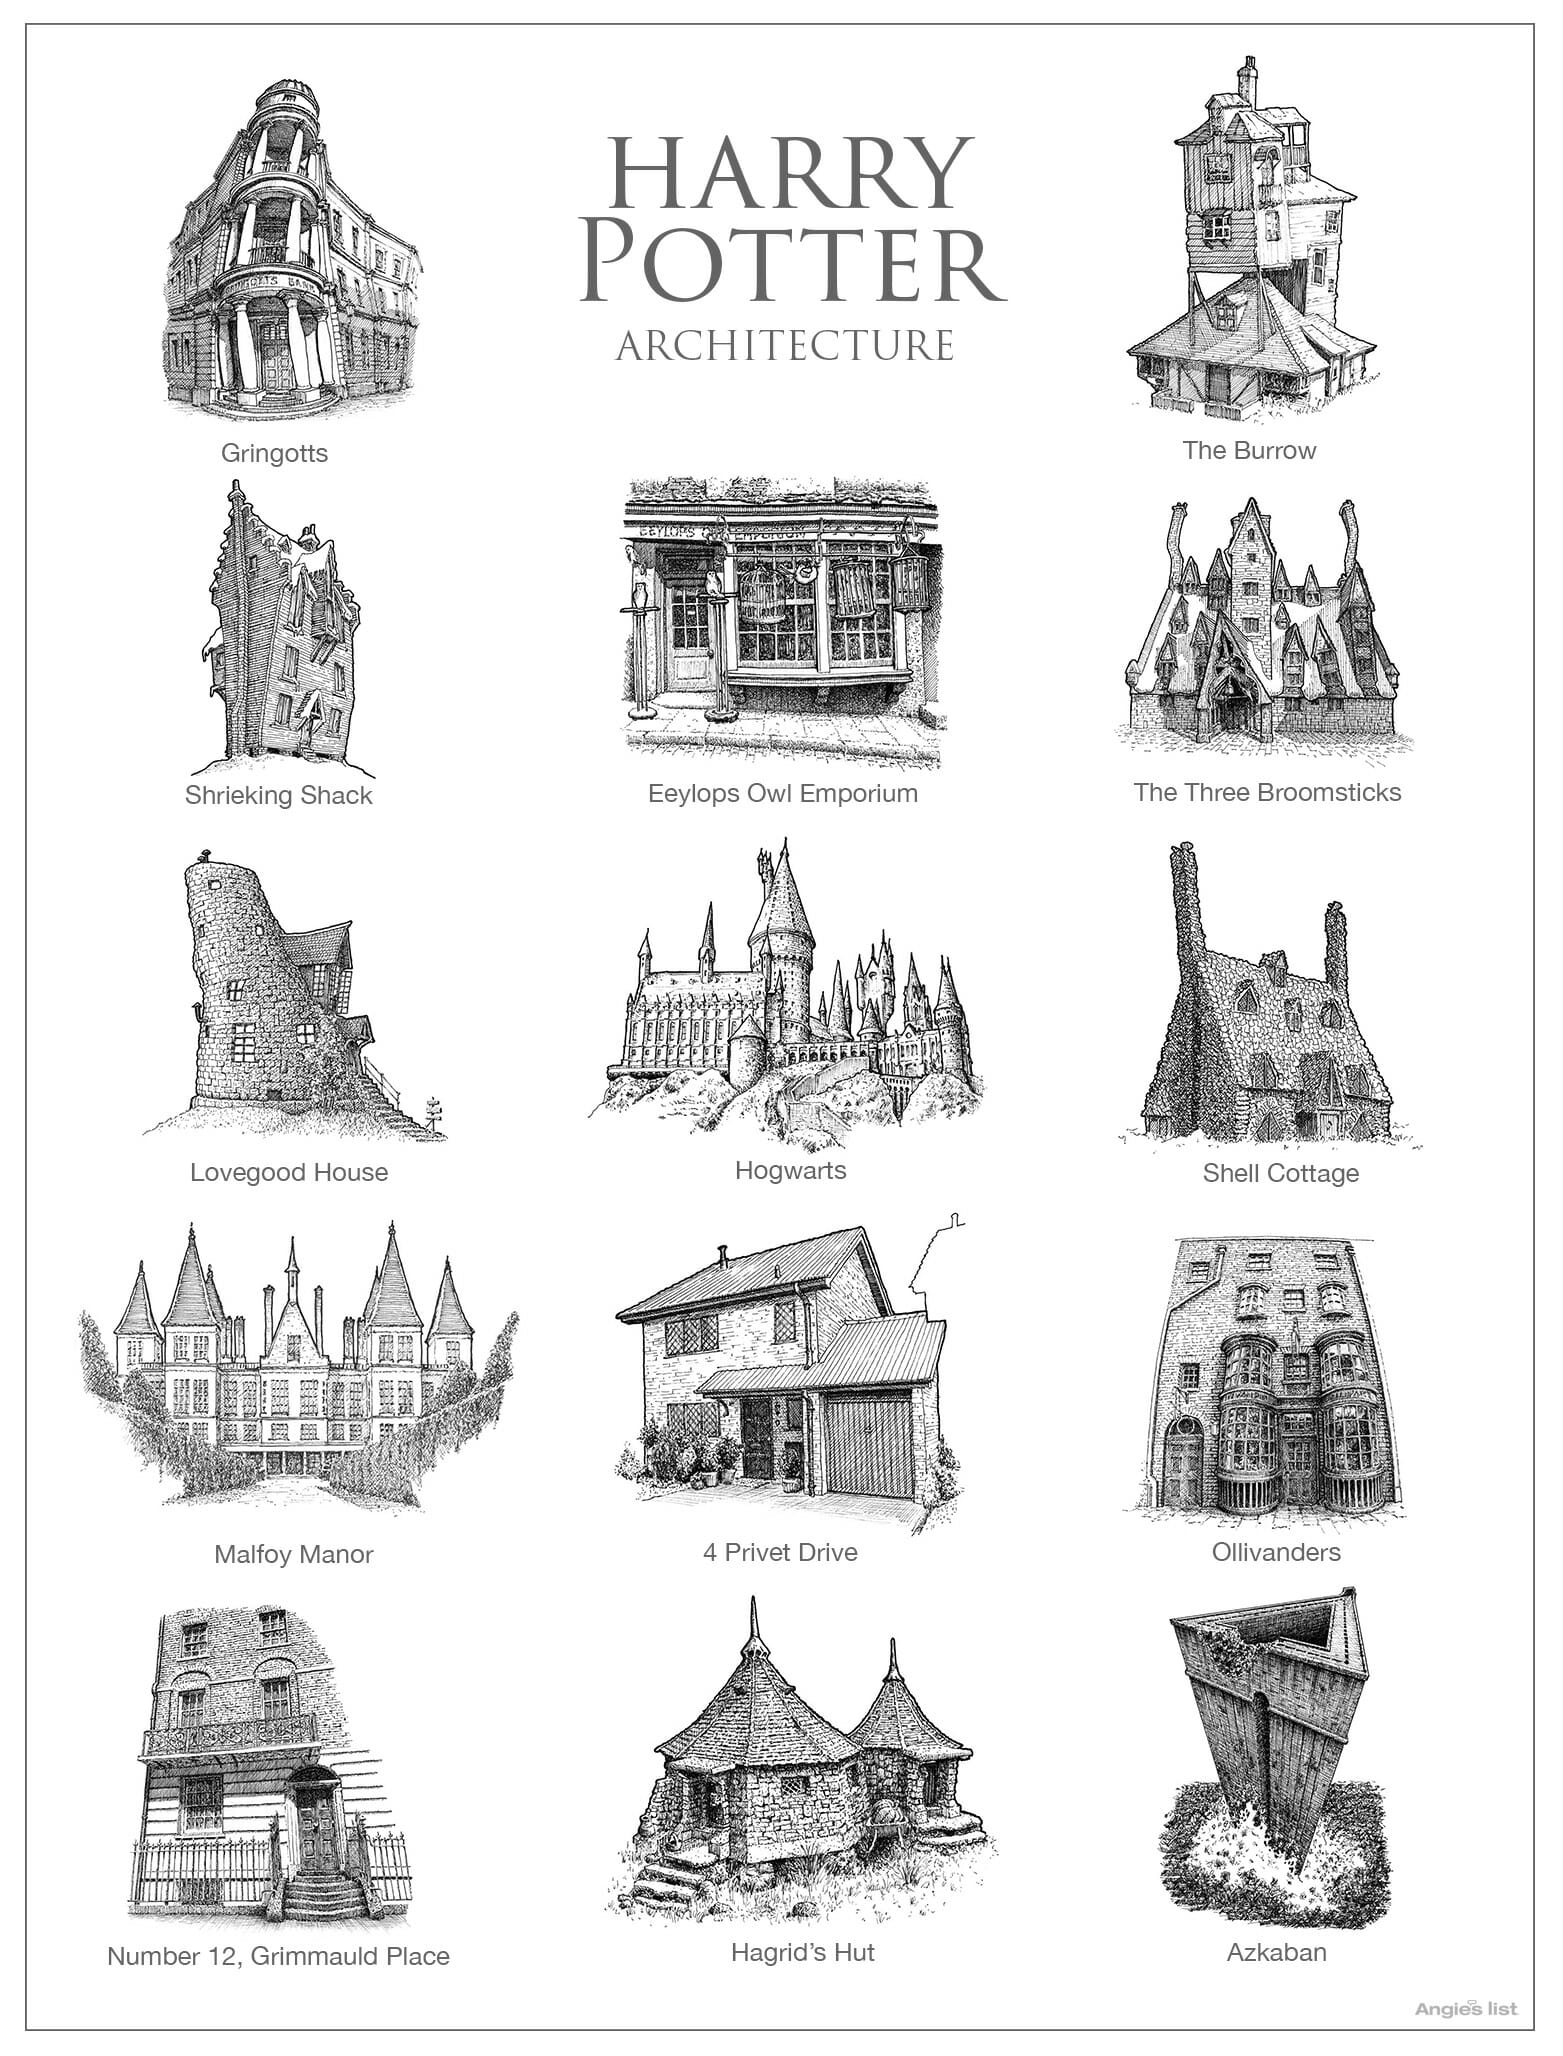 Hand-drawn architecture for Harry Potter